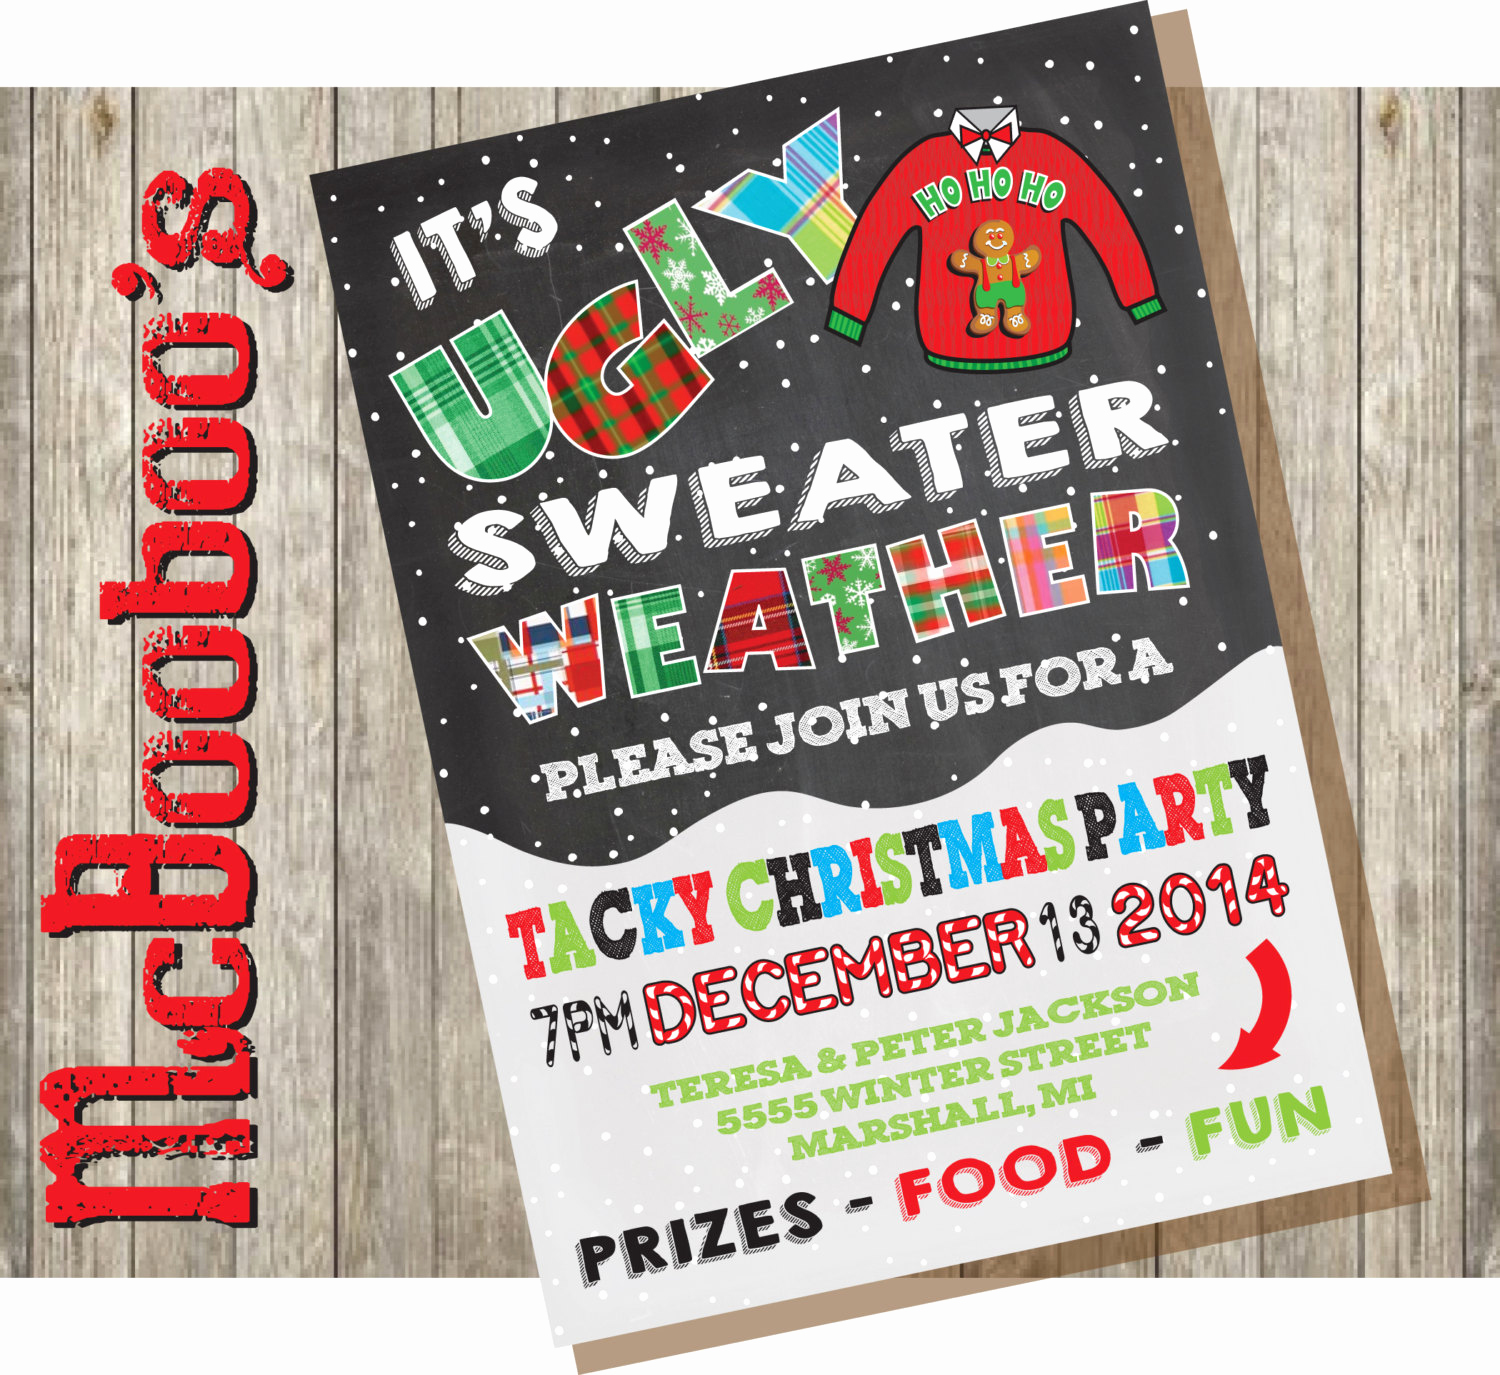 Ugly Christmas Sweater Party Invitation Fresh Ugly Tacky Christmas Sweater Party Invitations On A Snowy